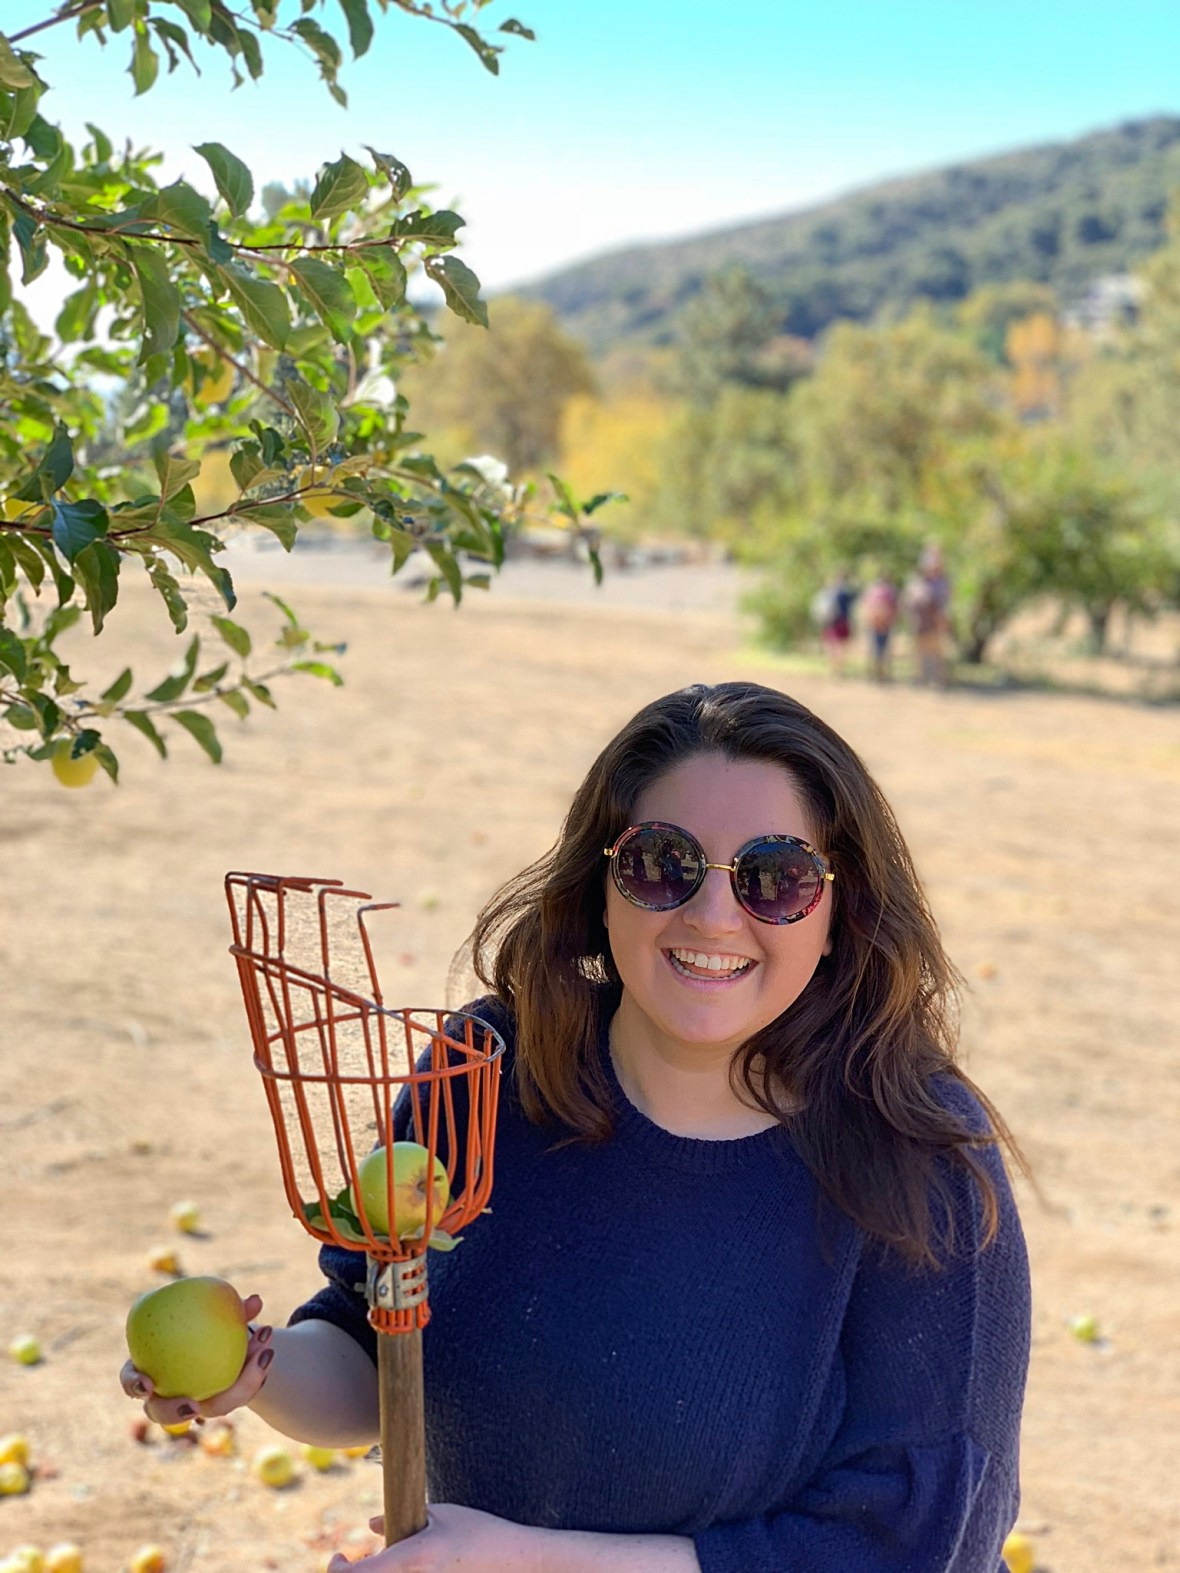 Apple Picking and Camping in Southern California